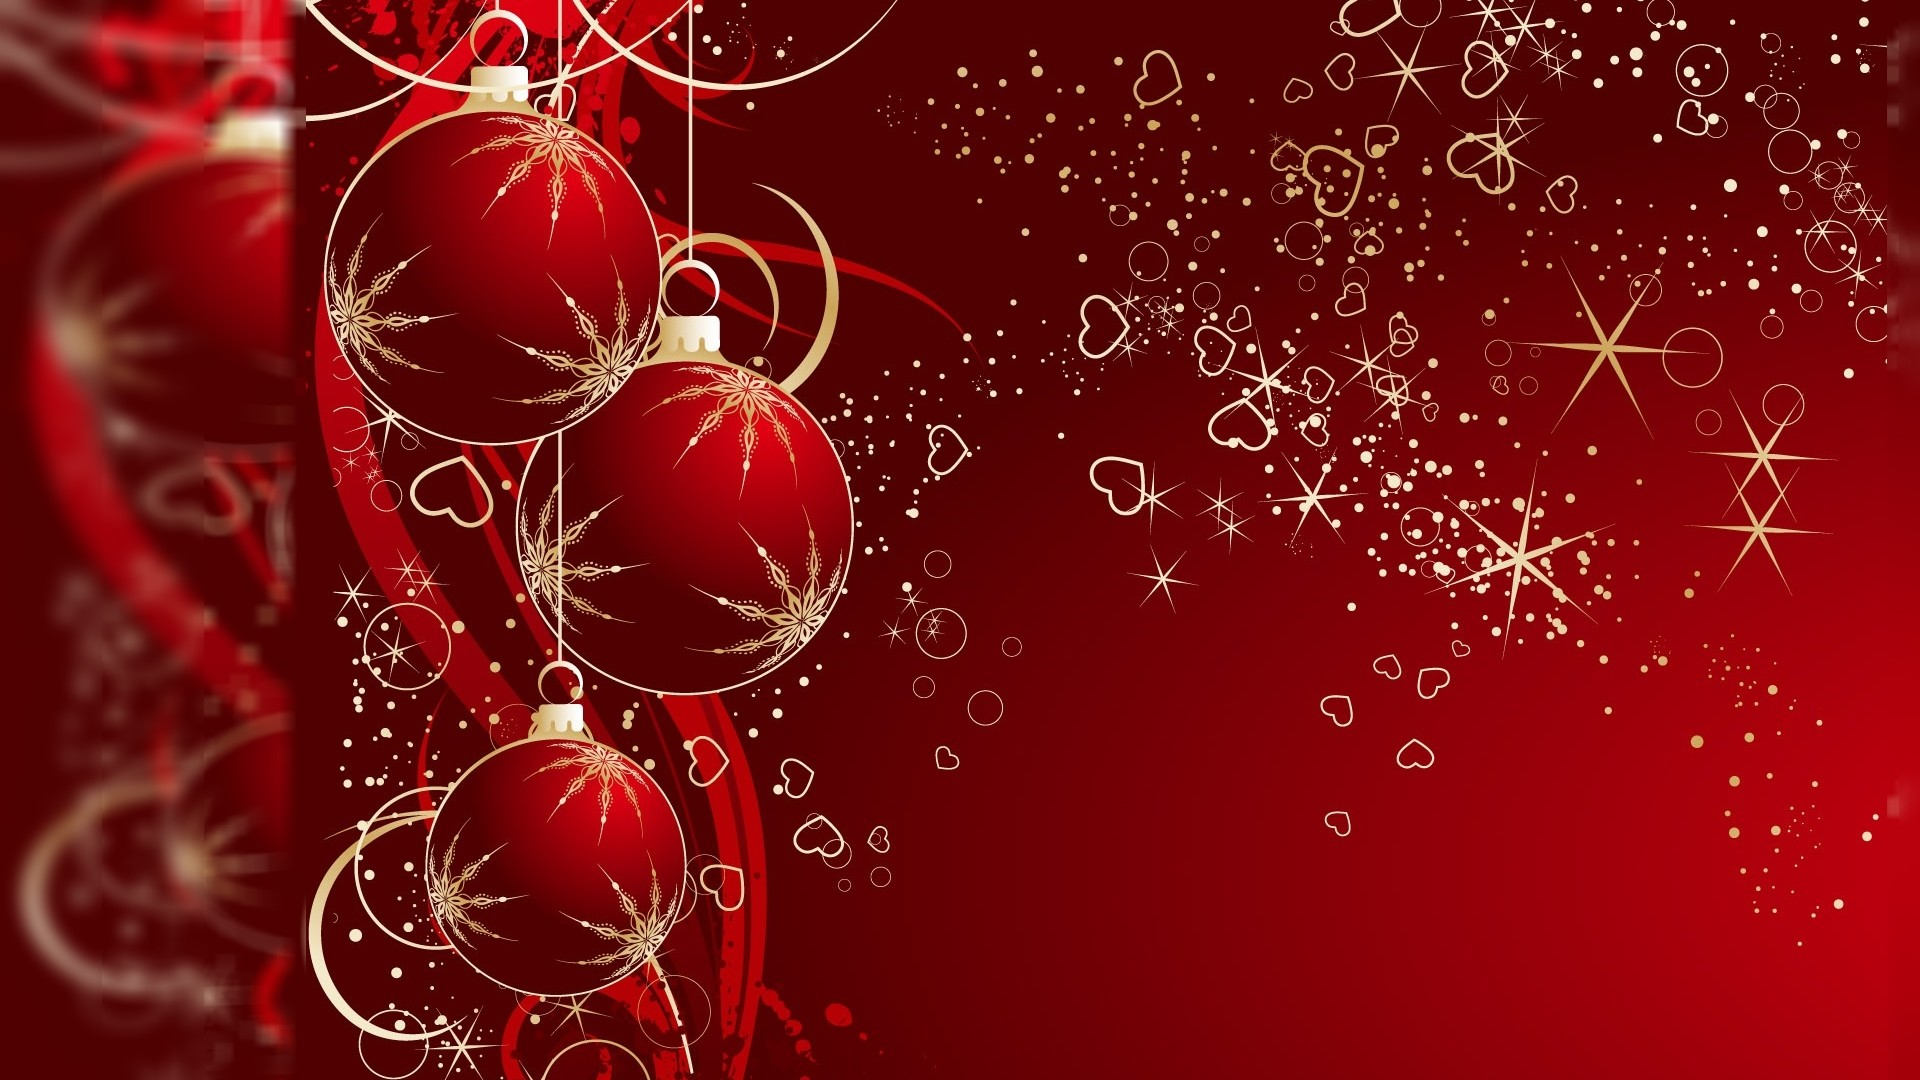 Holiday desktop backgrounds 66 images beautiful christmas desktop wallpapers christmas desktop wallpaper christmas wallpaper free christmas wallpaper free christmas wallpaper backgrounds voltagebd Image collections